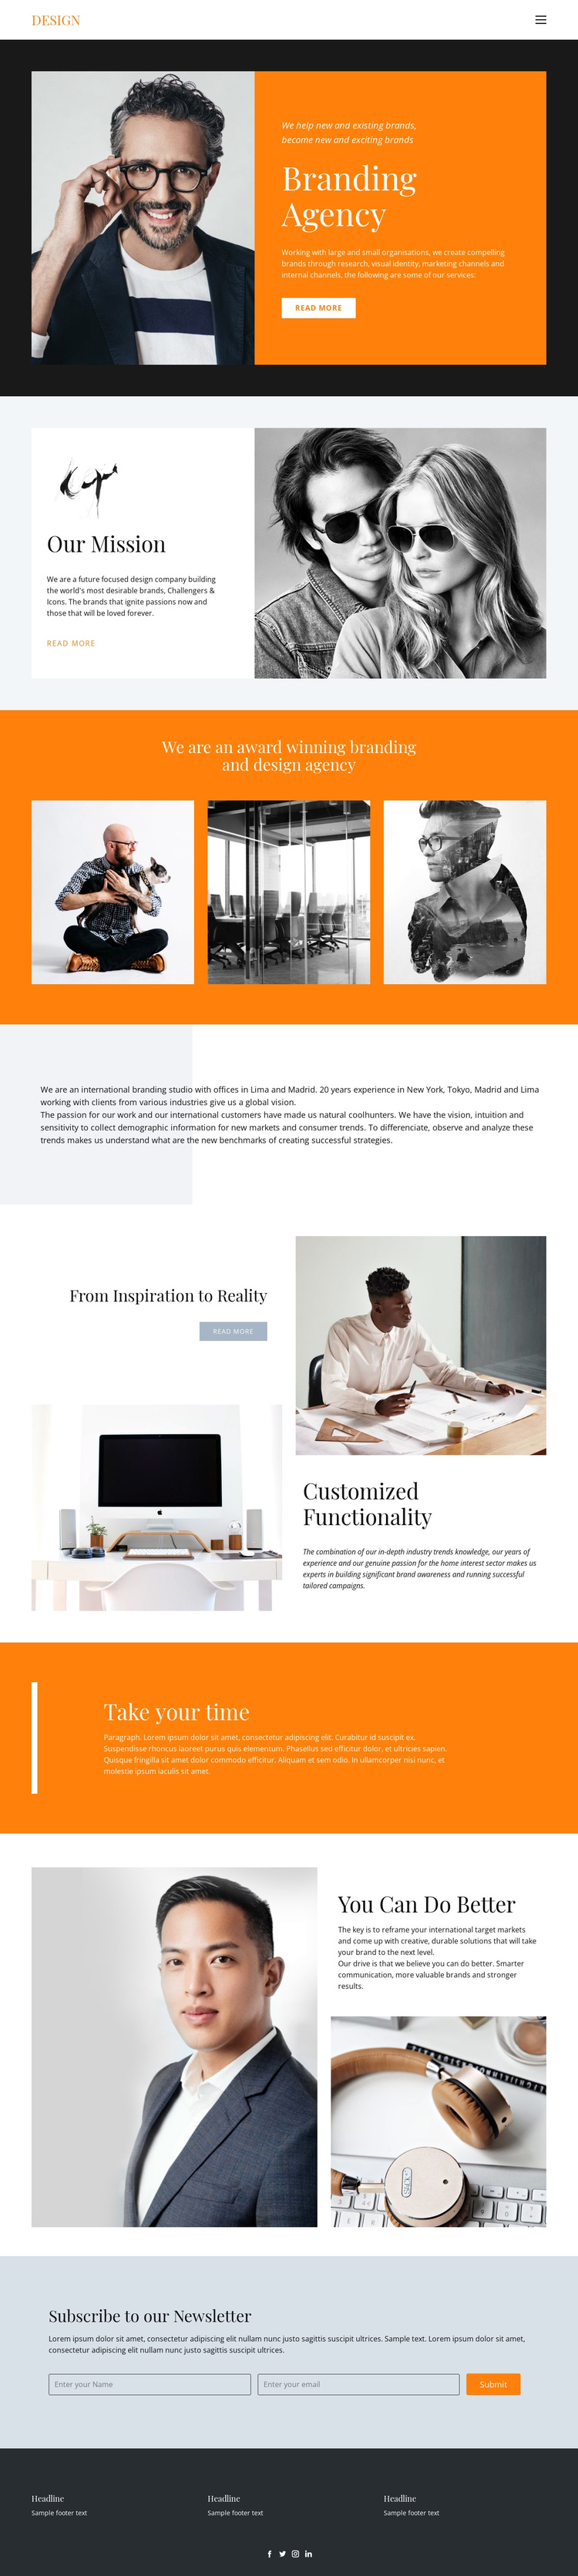 Desired results in business Joomla Template